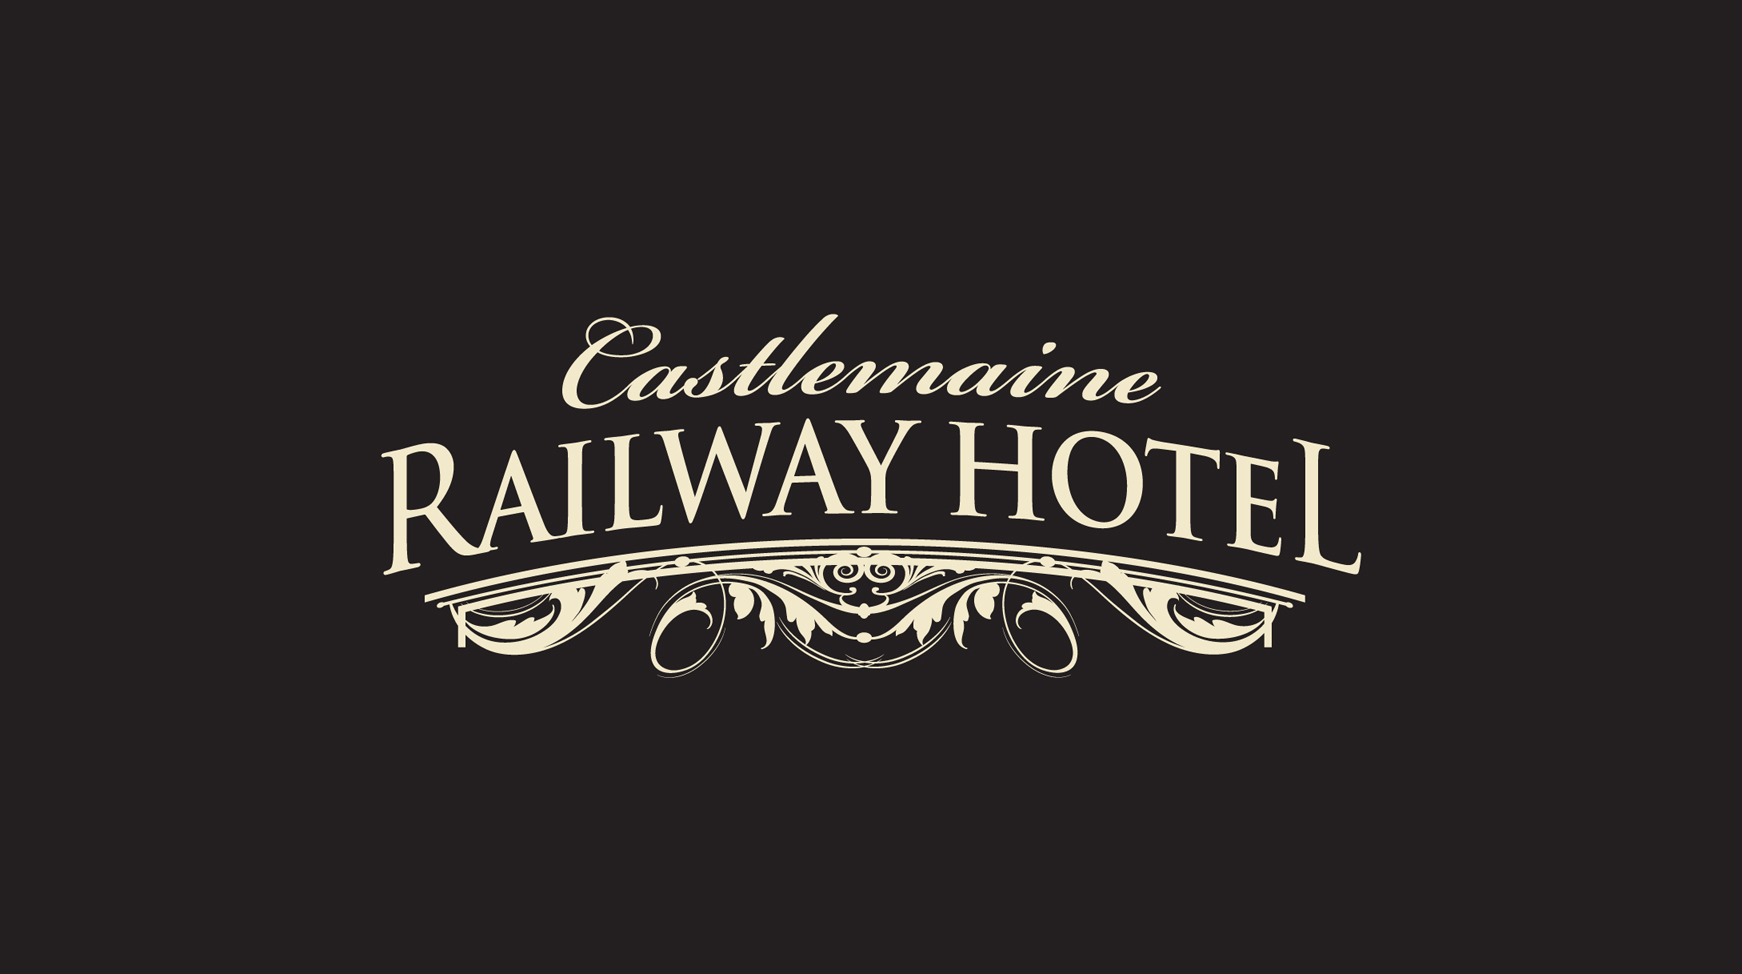 Railway Hotel Castlemaine - Accommodation BNB